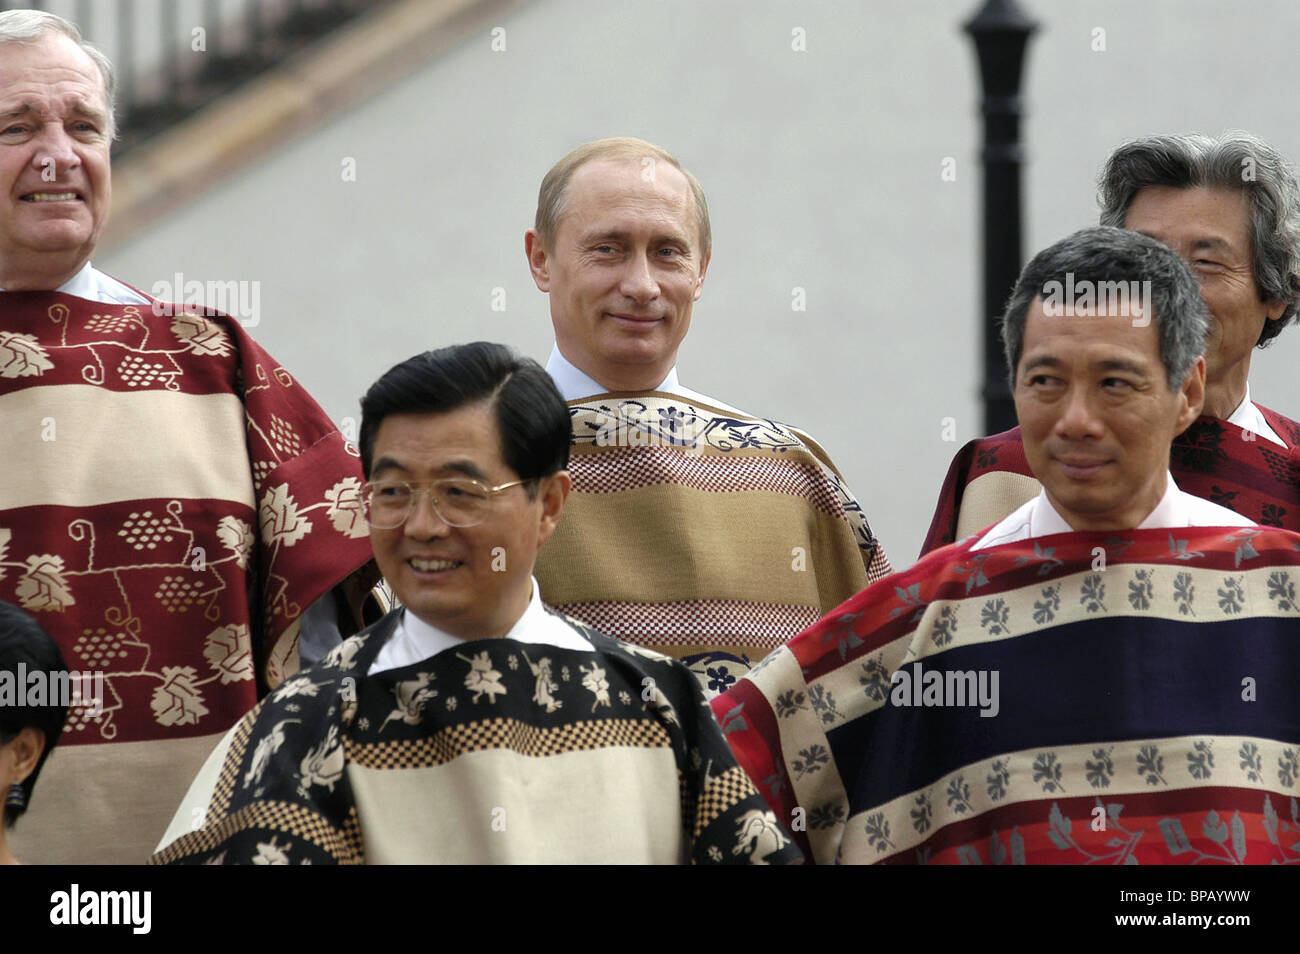 Group photo session at the 2004 APEC Summit in Santiago - Stock Image